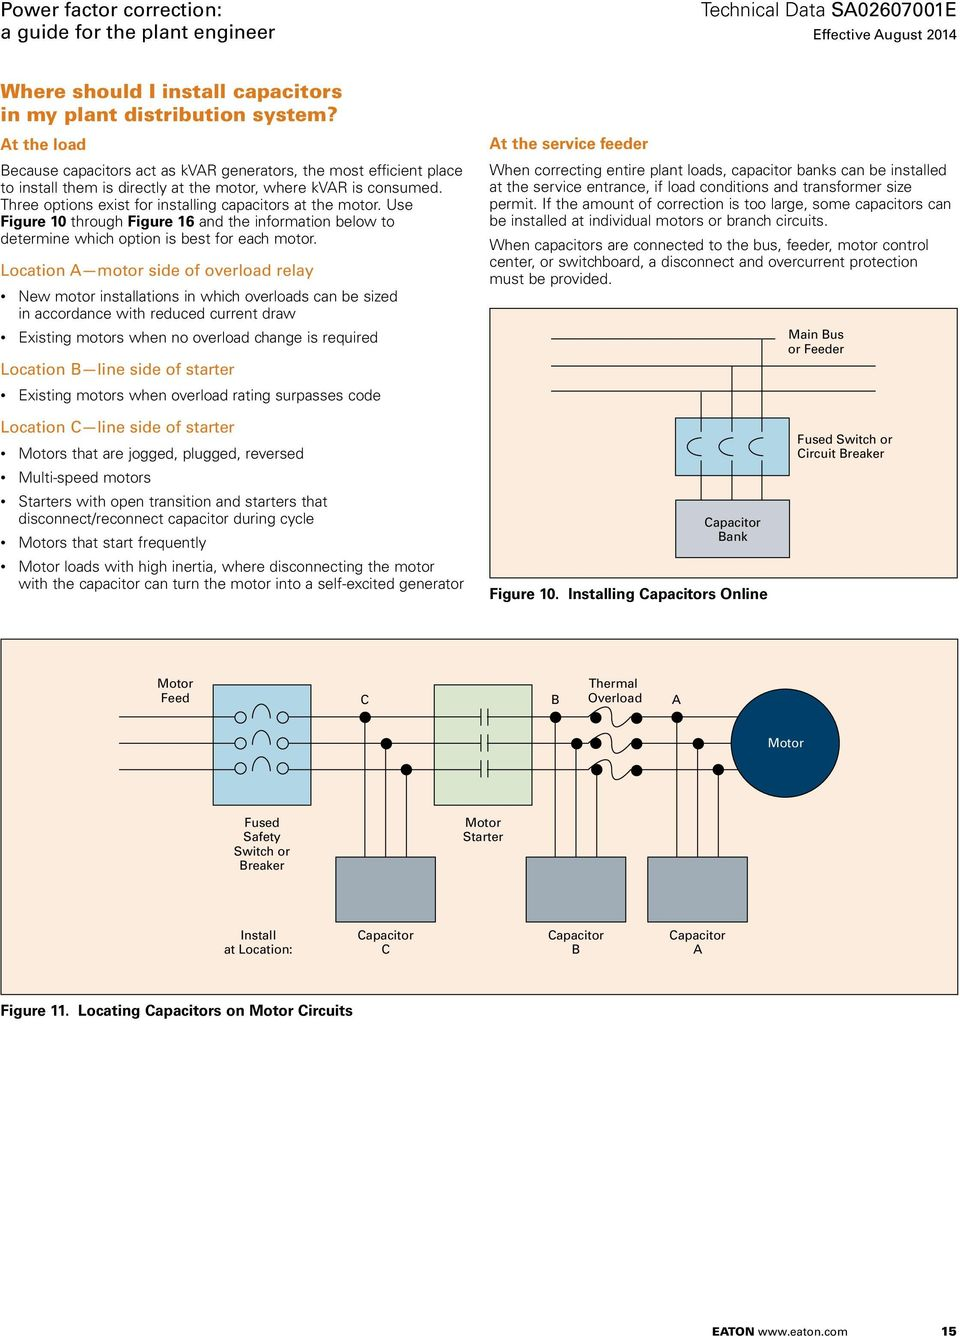 page_15 power factor correction a guide for the plant engineer pdf